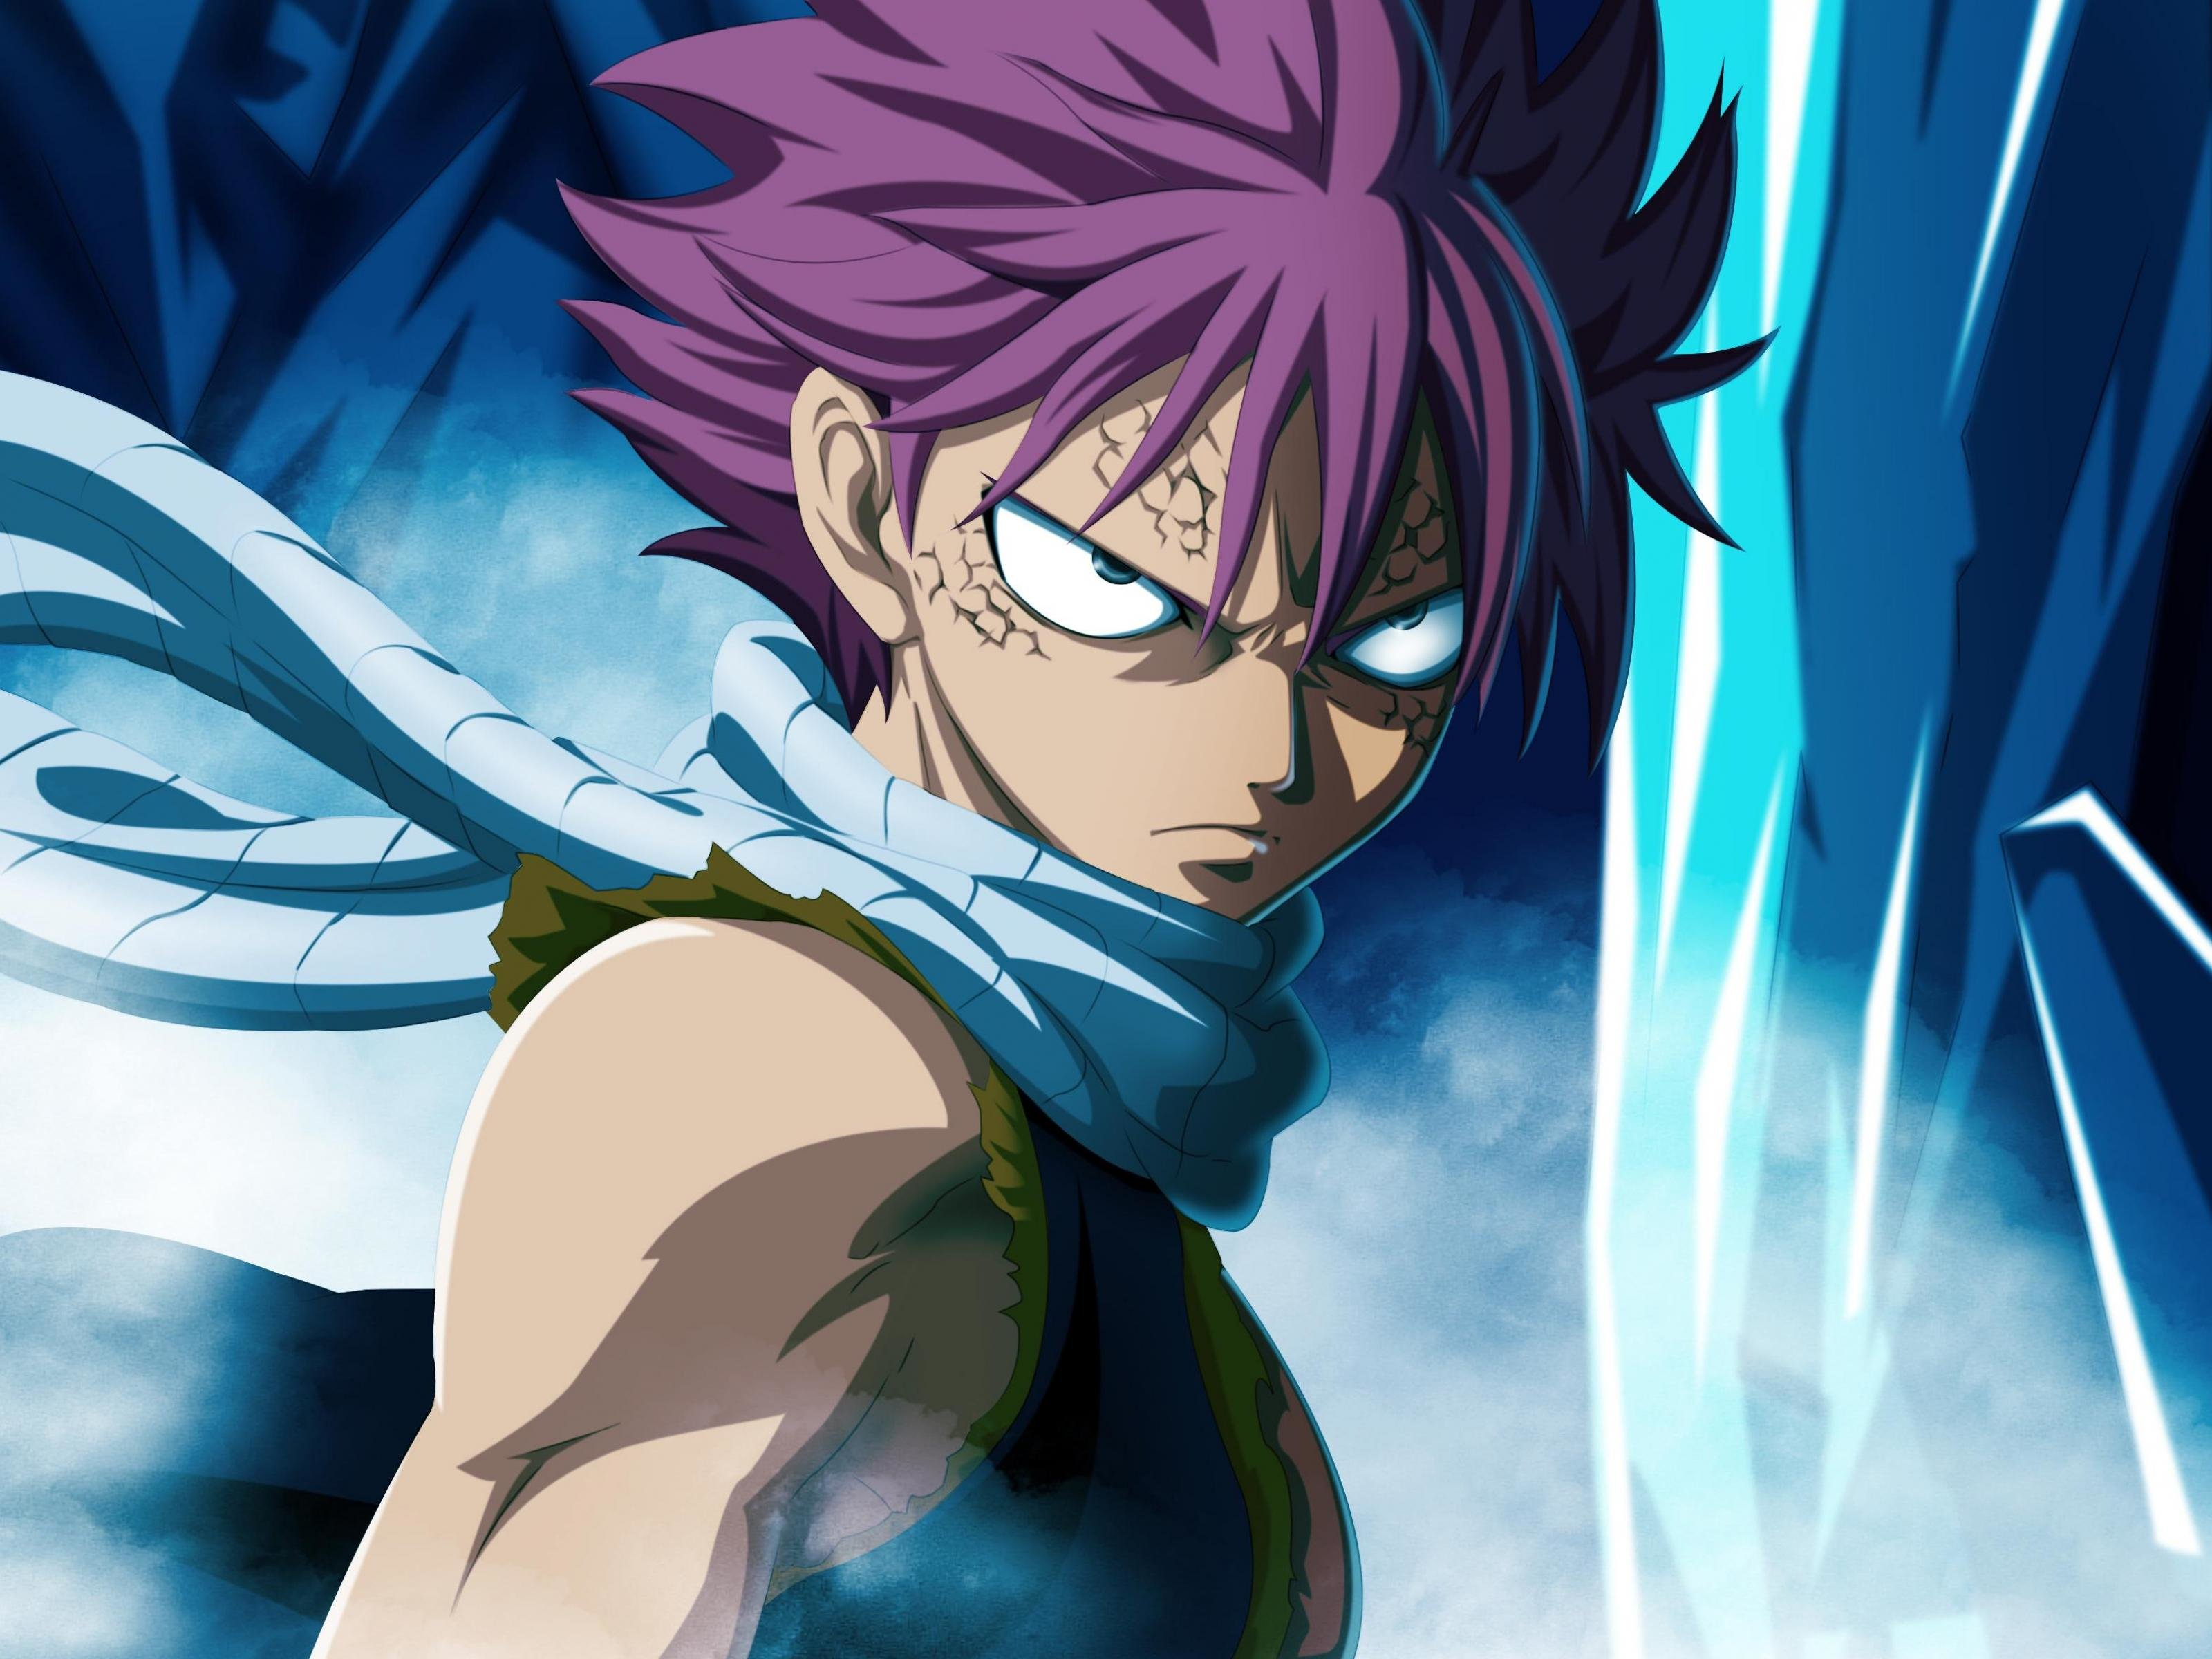 Awesome Natsu Dragneel free wallpaper ID:40964 for hd 3200x2400 desktop